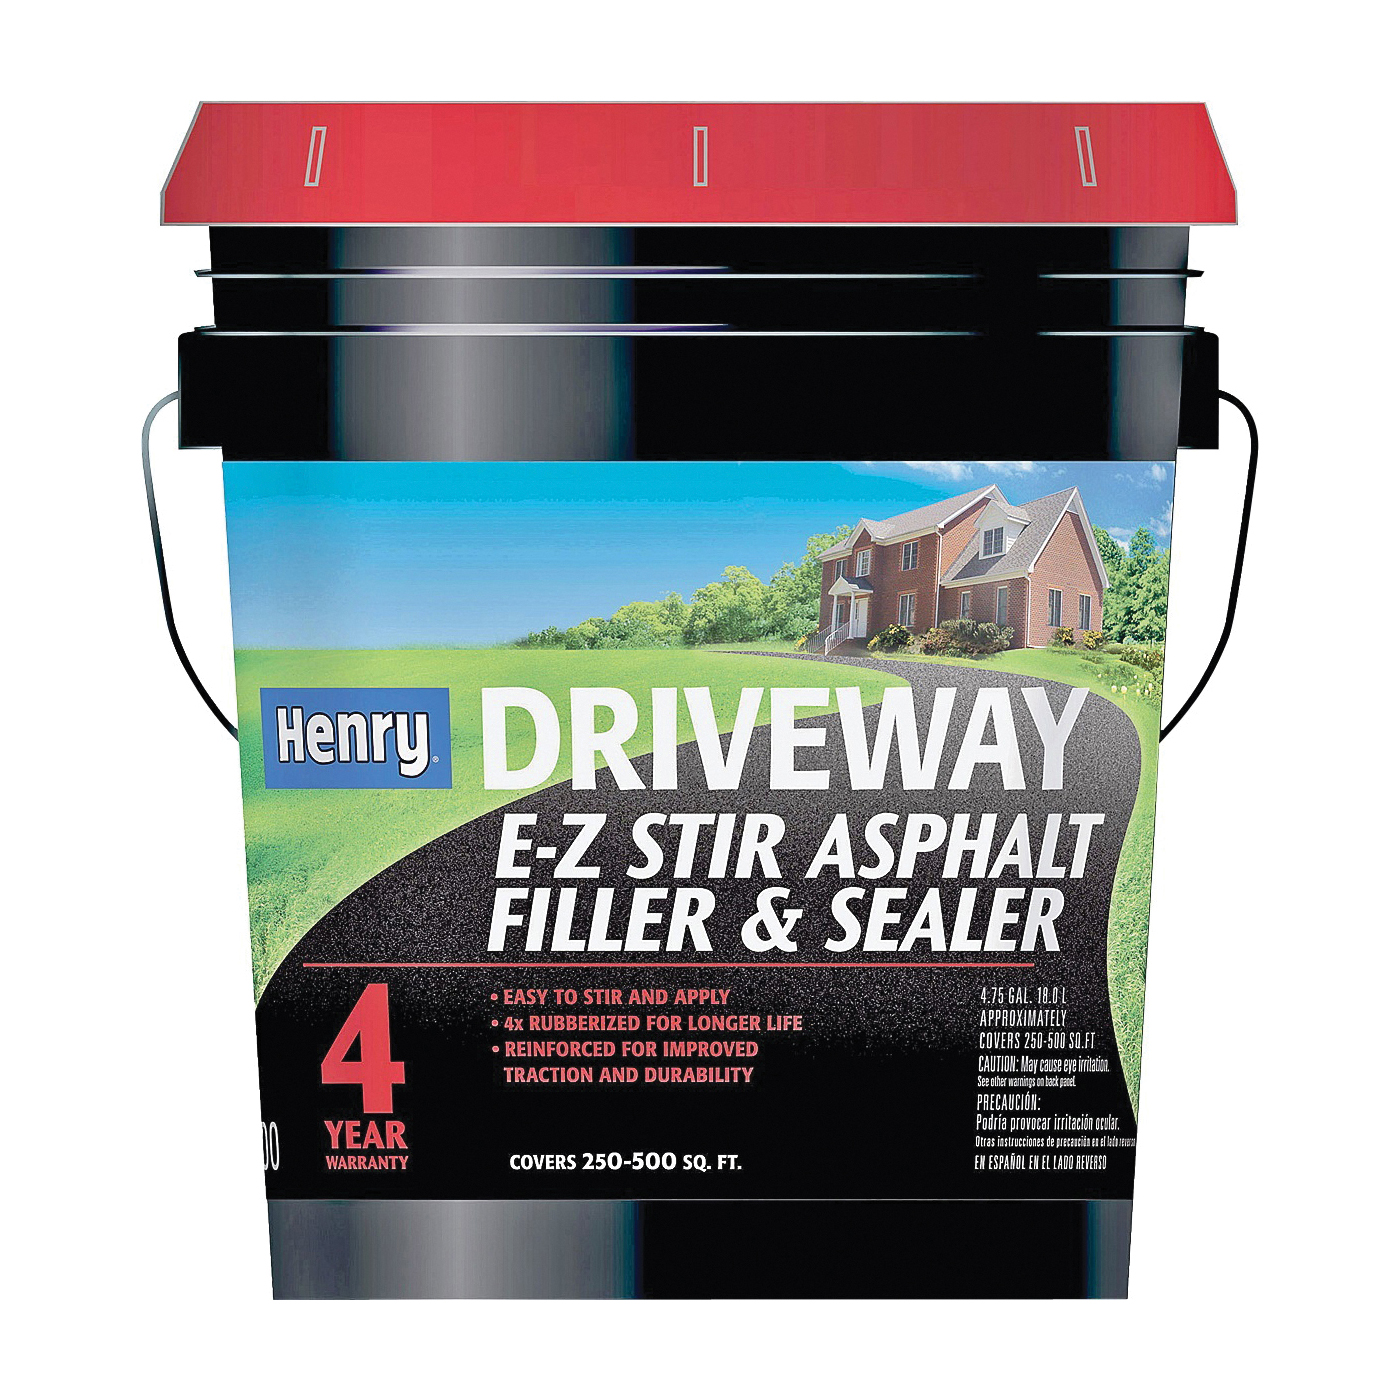 Picture of Henry HE200411 Asphalt Filler and Sealer, Liquid, Black, 5 gal Package, Pail